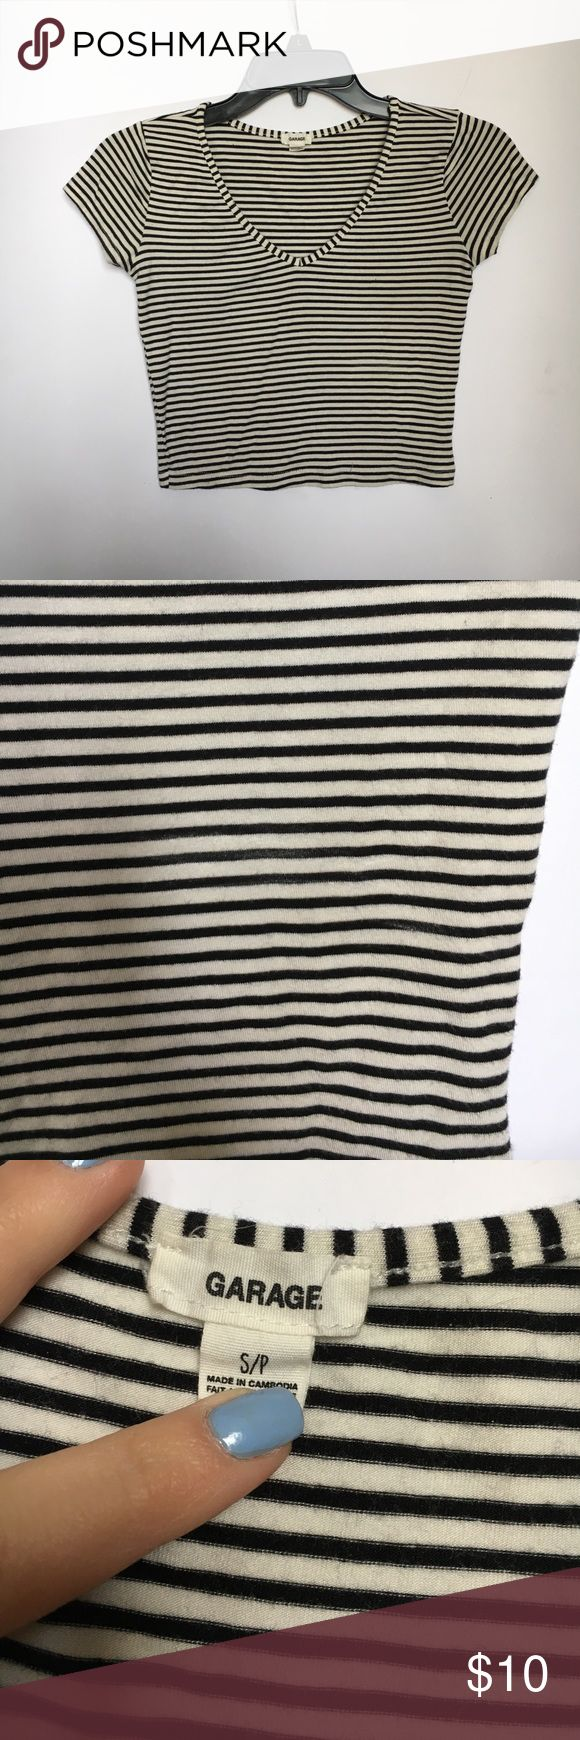 Garage Black and White Striped Vneck Crop Top Worn and washed a few times. Garage black and white striped vneck crop top. Fits extremely well and very flattering when paired with high waisted jeans or shorts! Perfect for spring and summer. Garage Tops Crop Tops